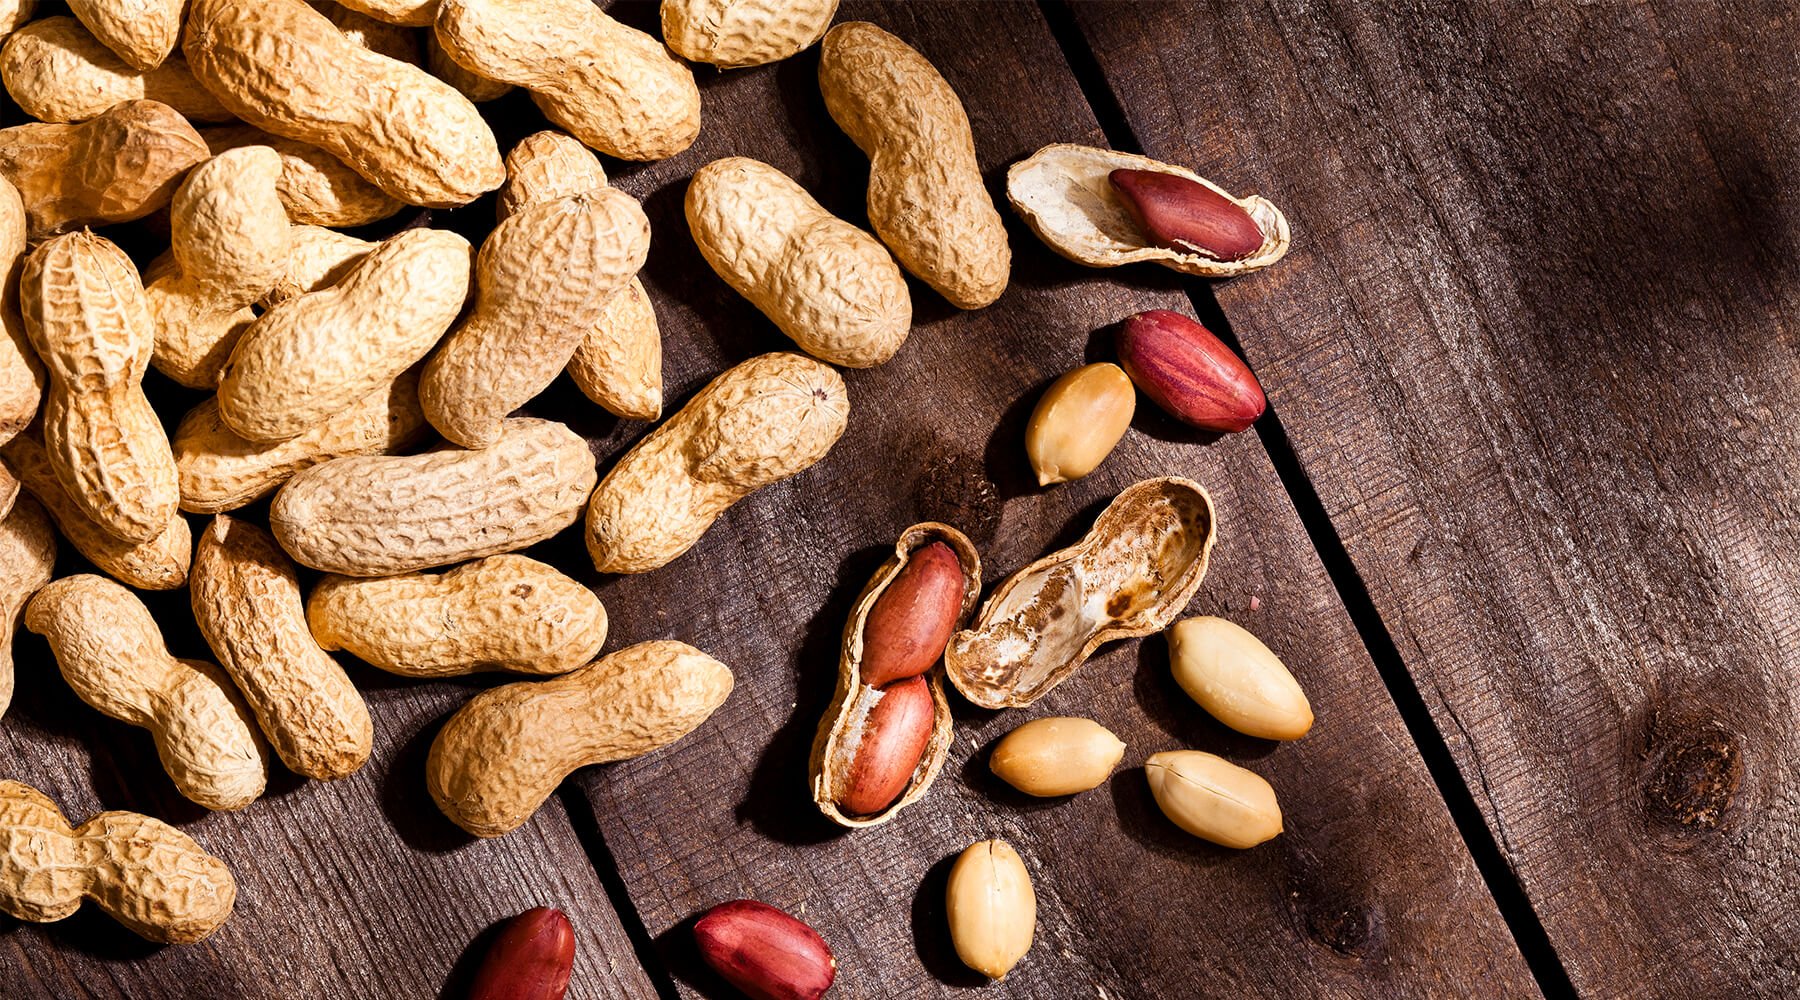 Parent's Guide: How To Introduce Peanuts To Baby